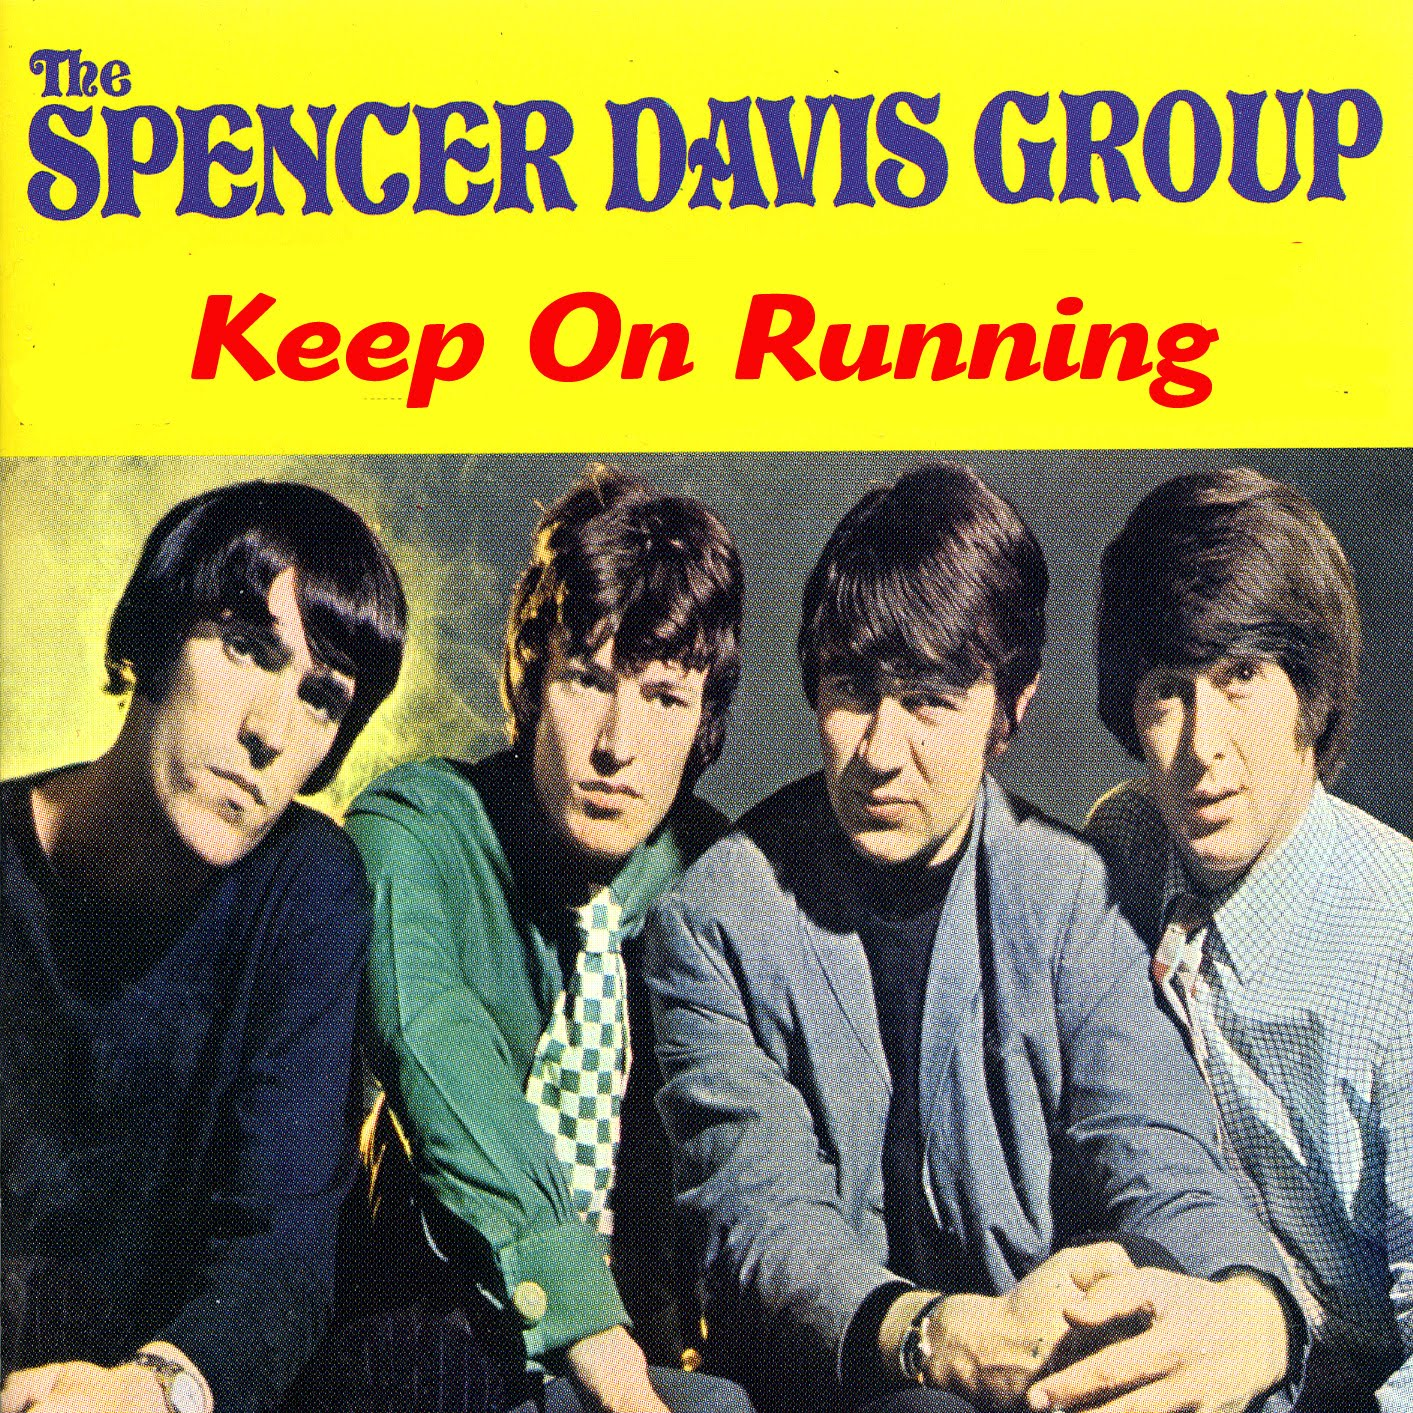 The Spencer Davis Group Every Little Bit Hurts